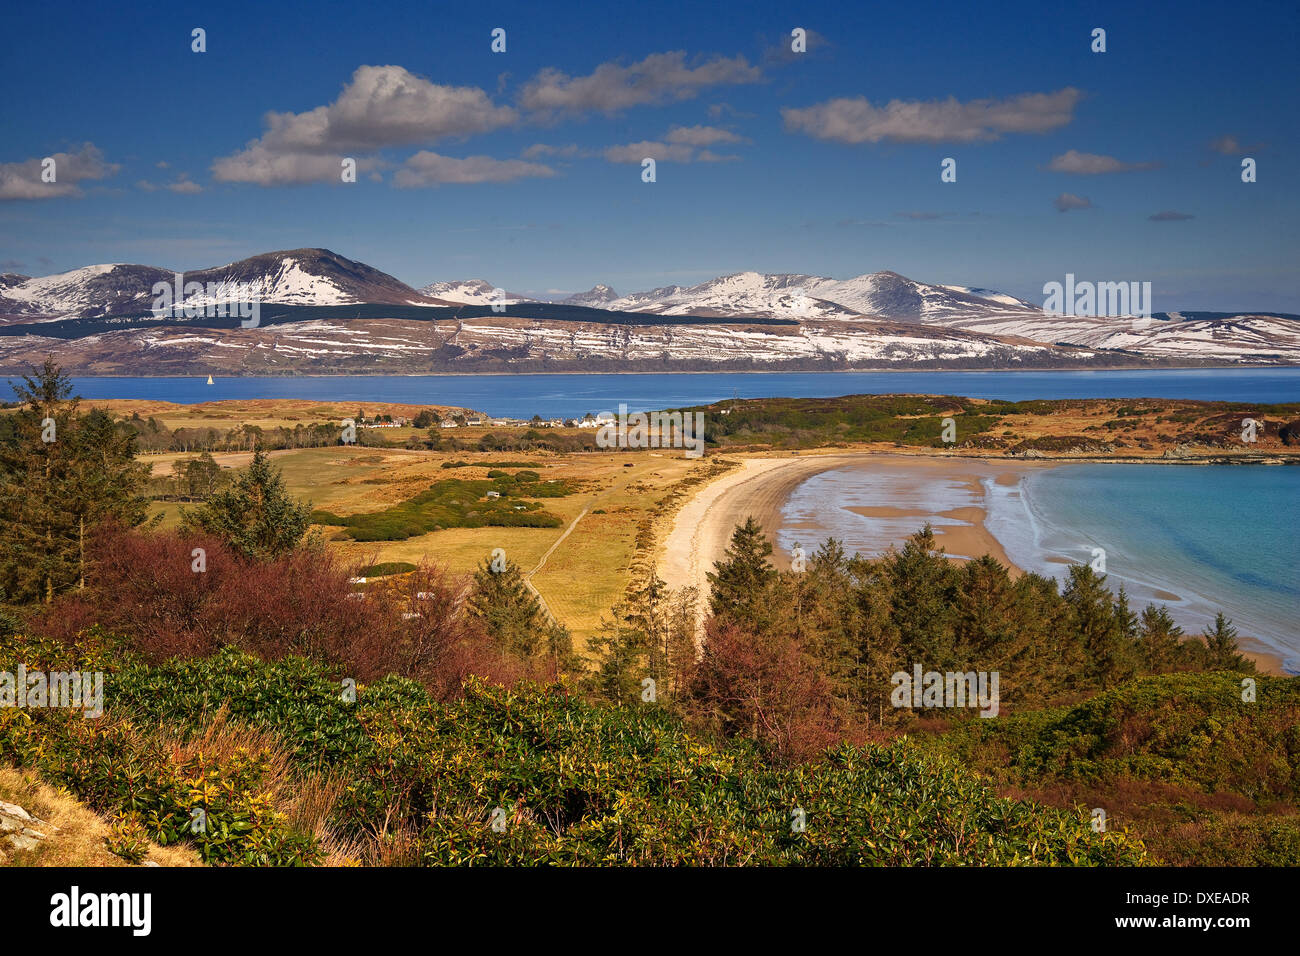 Sping view across Carradale bay towards the island of Arran,Kintyre,Argyll. - Stock Image